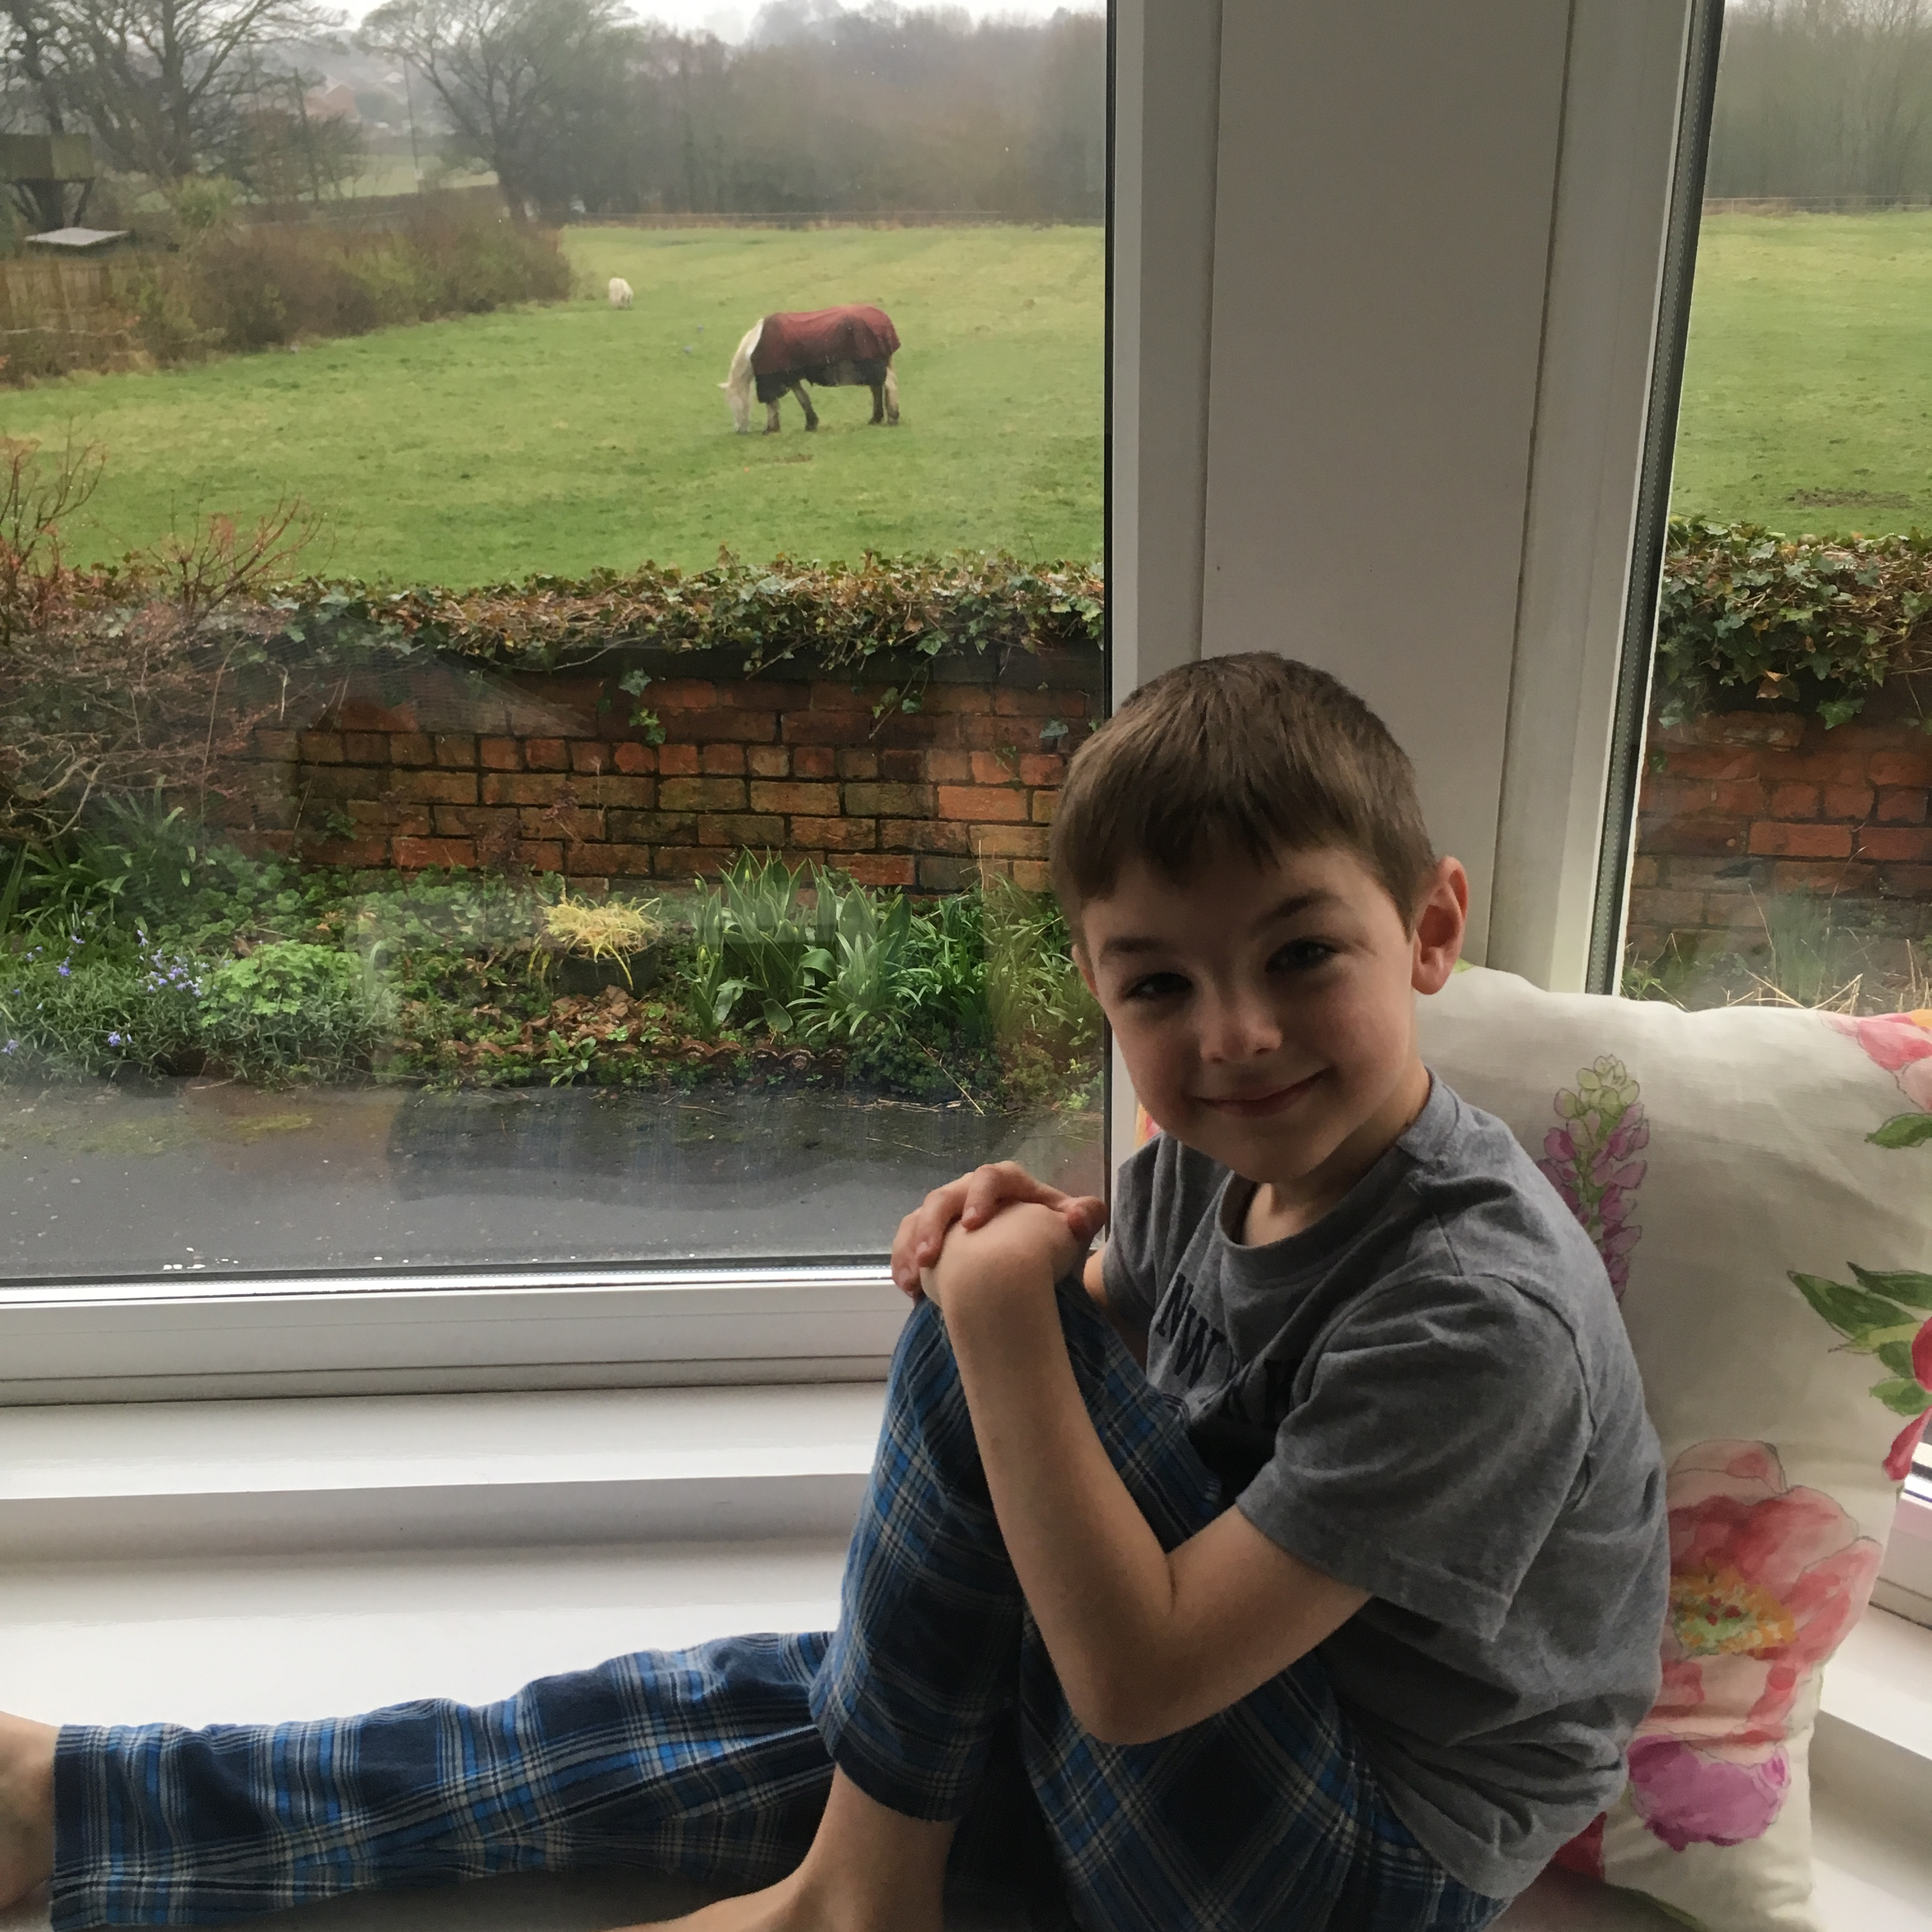 Things Helen Loves, boy on window seat with fields and horses in background